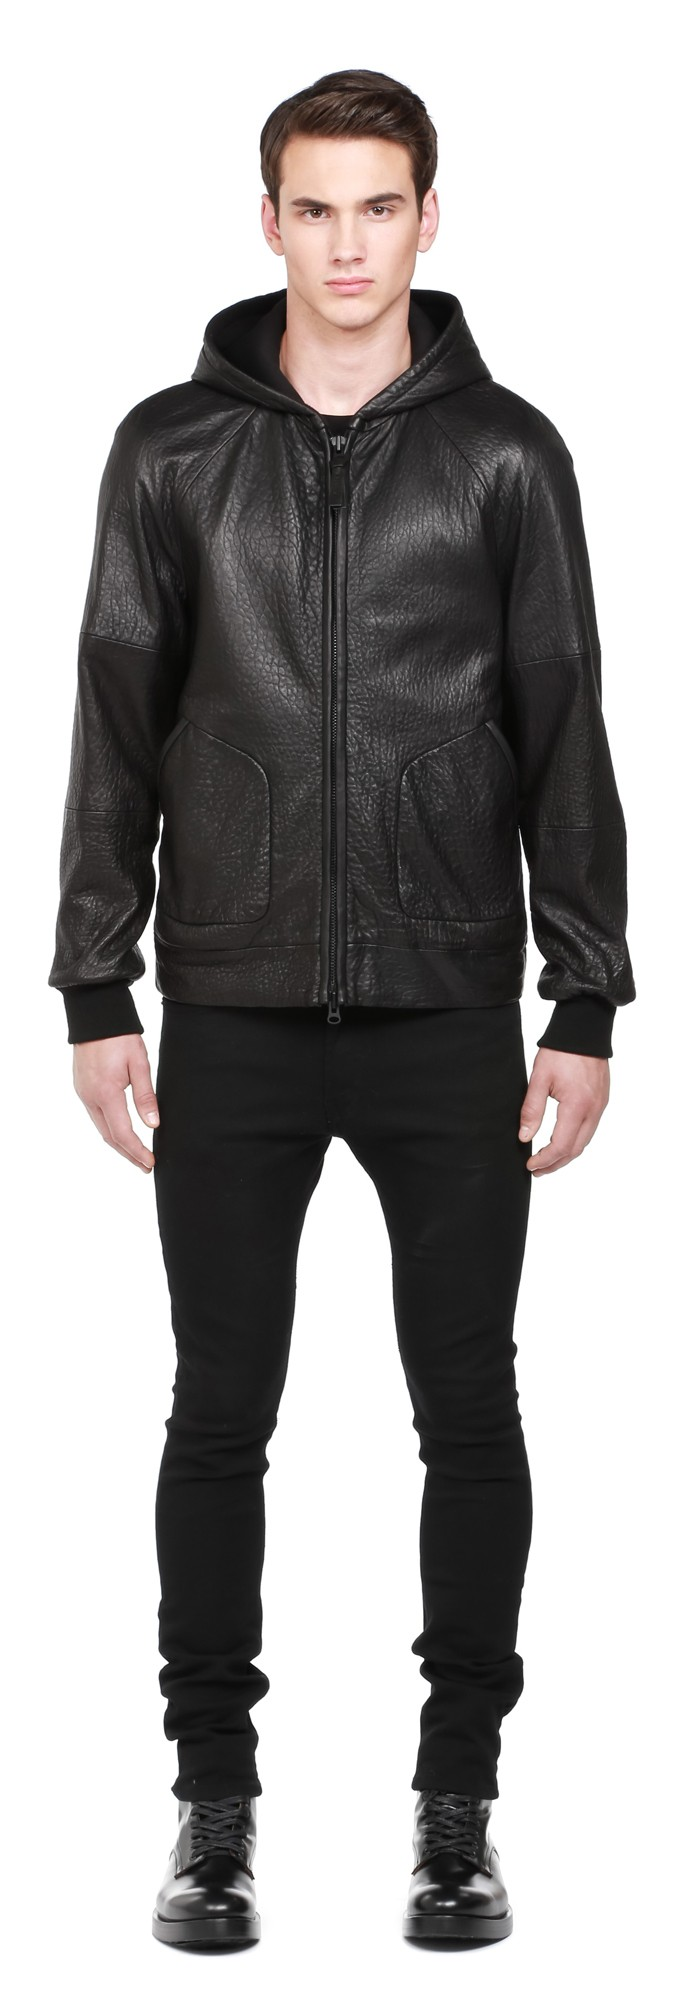 Black Pebble Leather Jacket With Hood Mackage Men